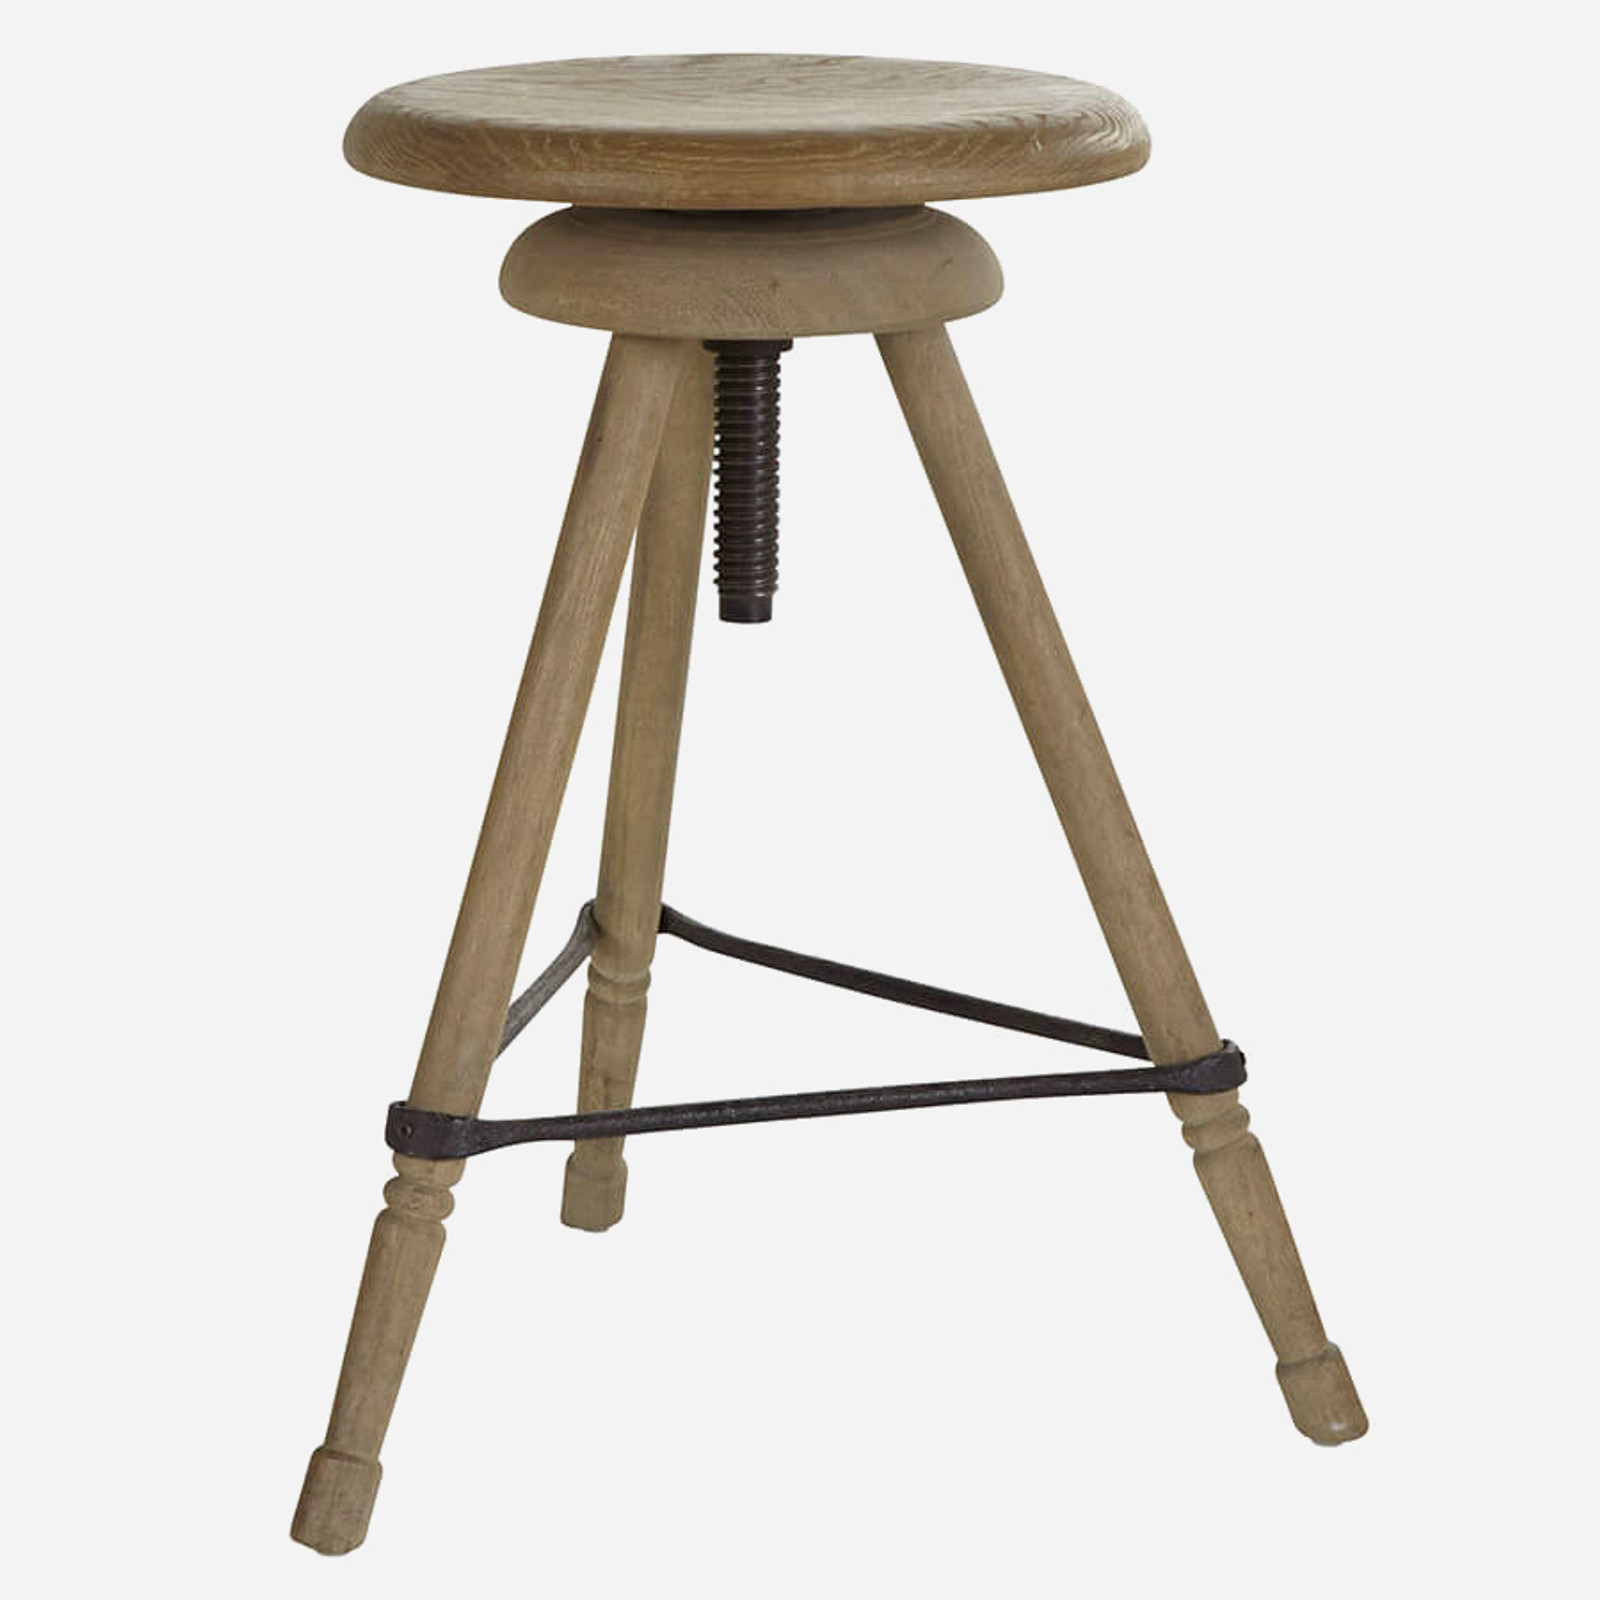 Adjustable Tripod Stool, Short